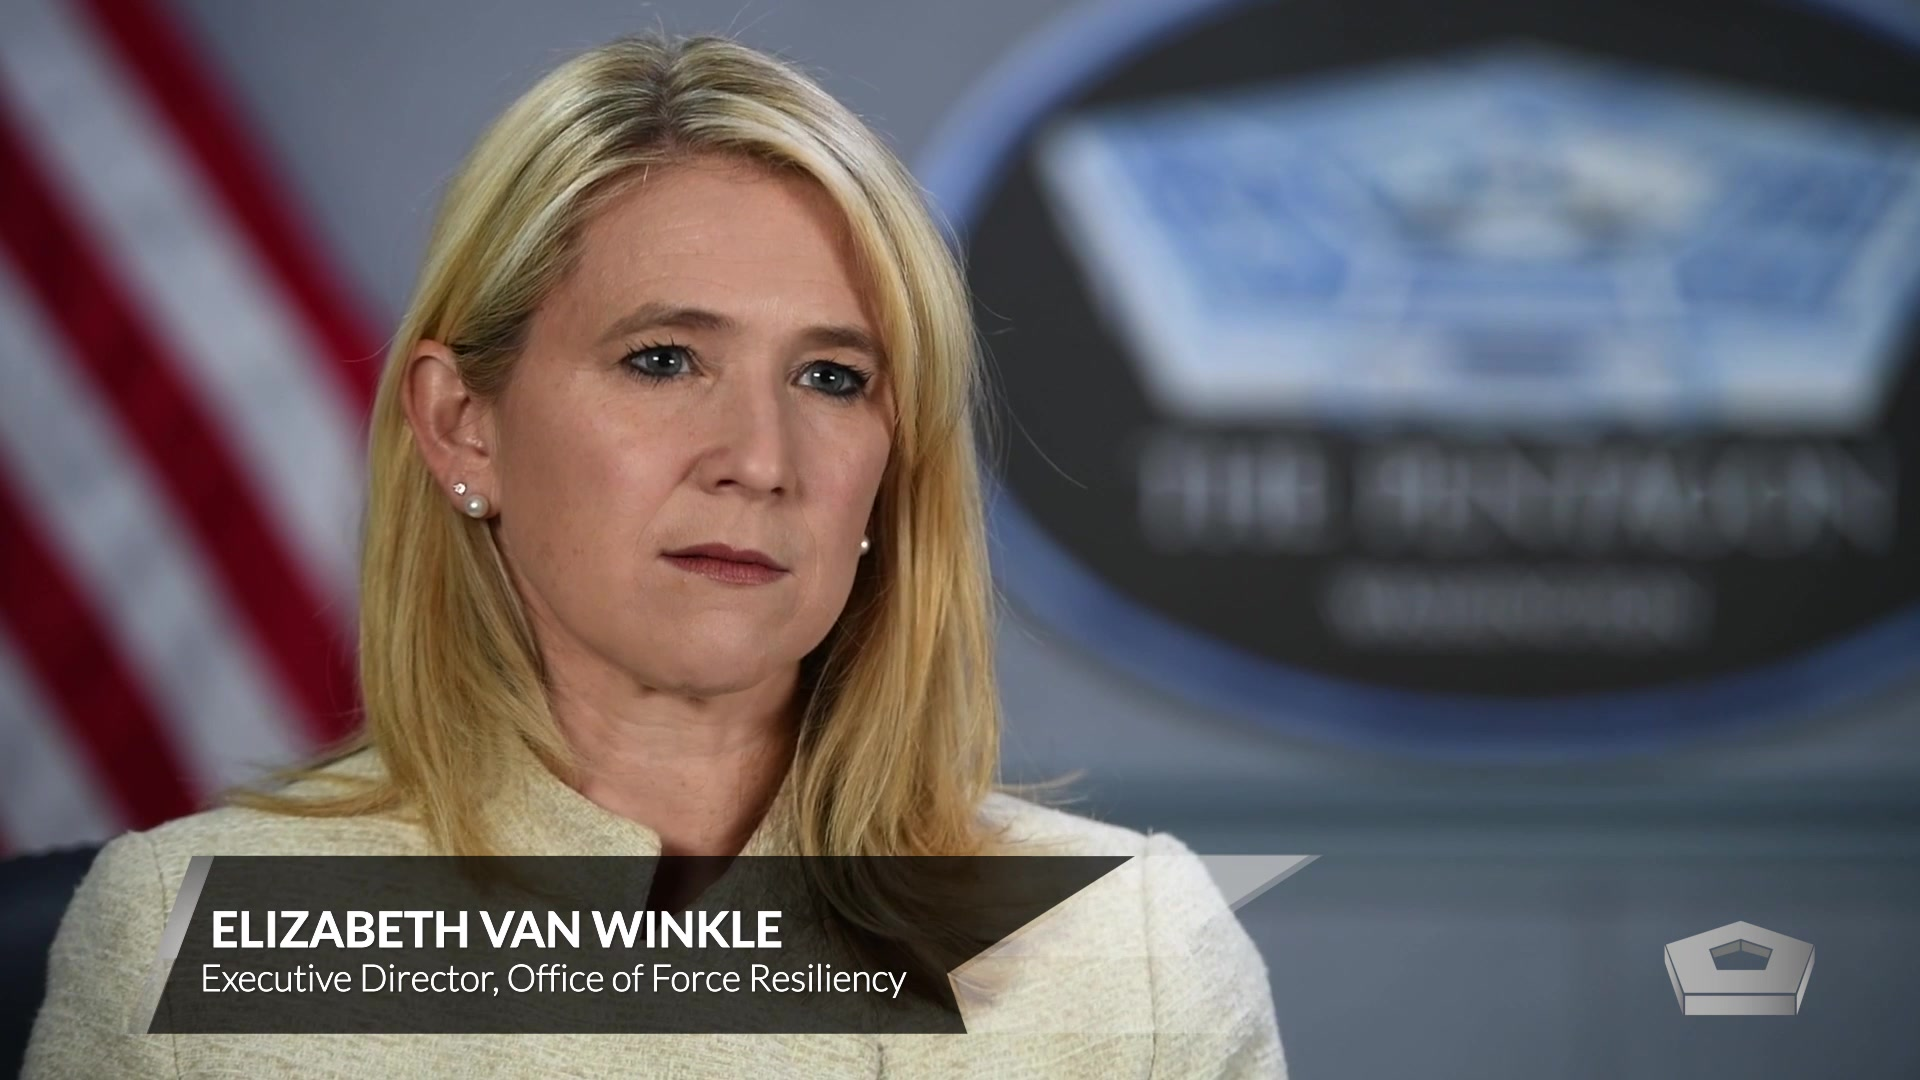 Elizabeth Van Winkle, executive director of the Office of Force Resiliency for the undersecretary of defense for personnel and readiness speaks about the 2018 Department of Defense sexual assault prevention and response report. 